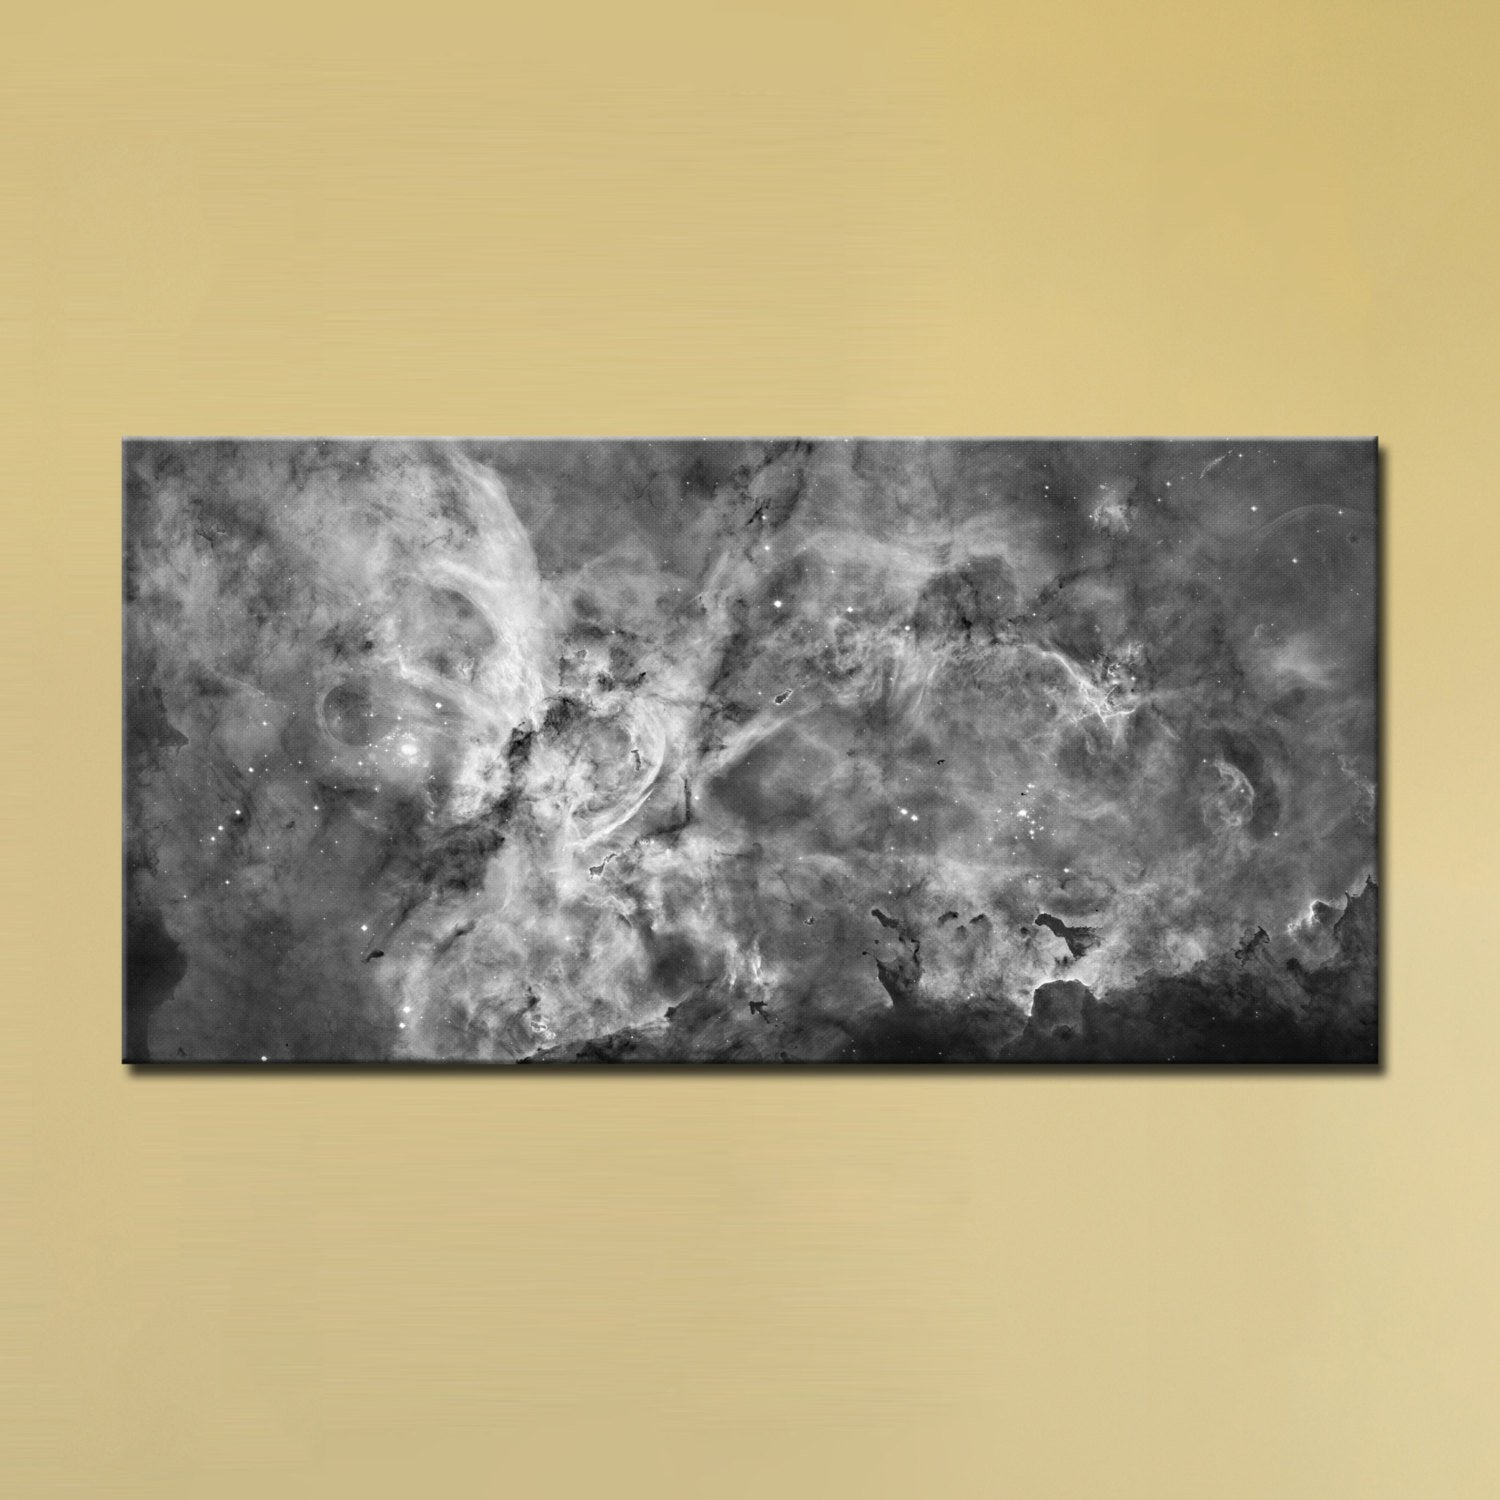 The Carina Nebula, Star Birth in the Extreme (Grayscale) (18″ x 36″) – Canvas Wrap Print